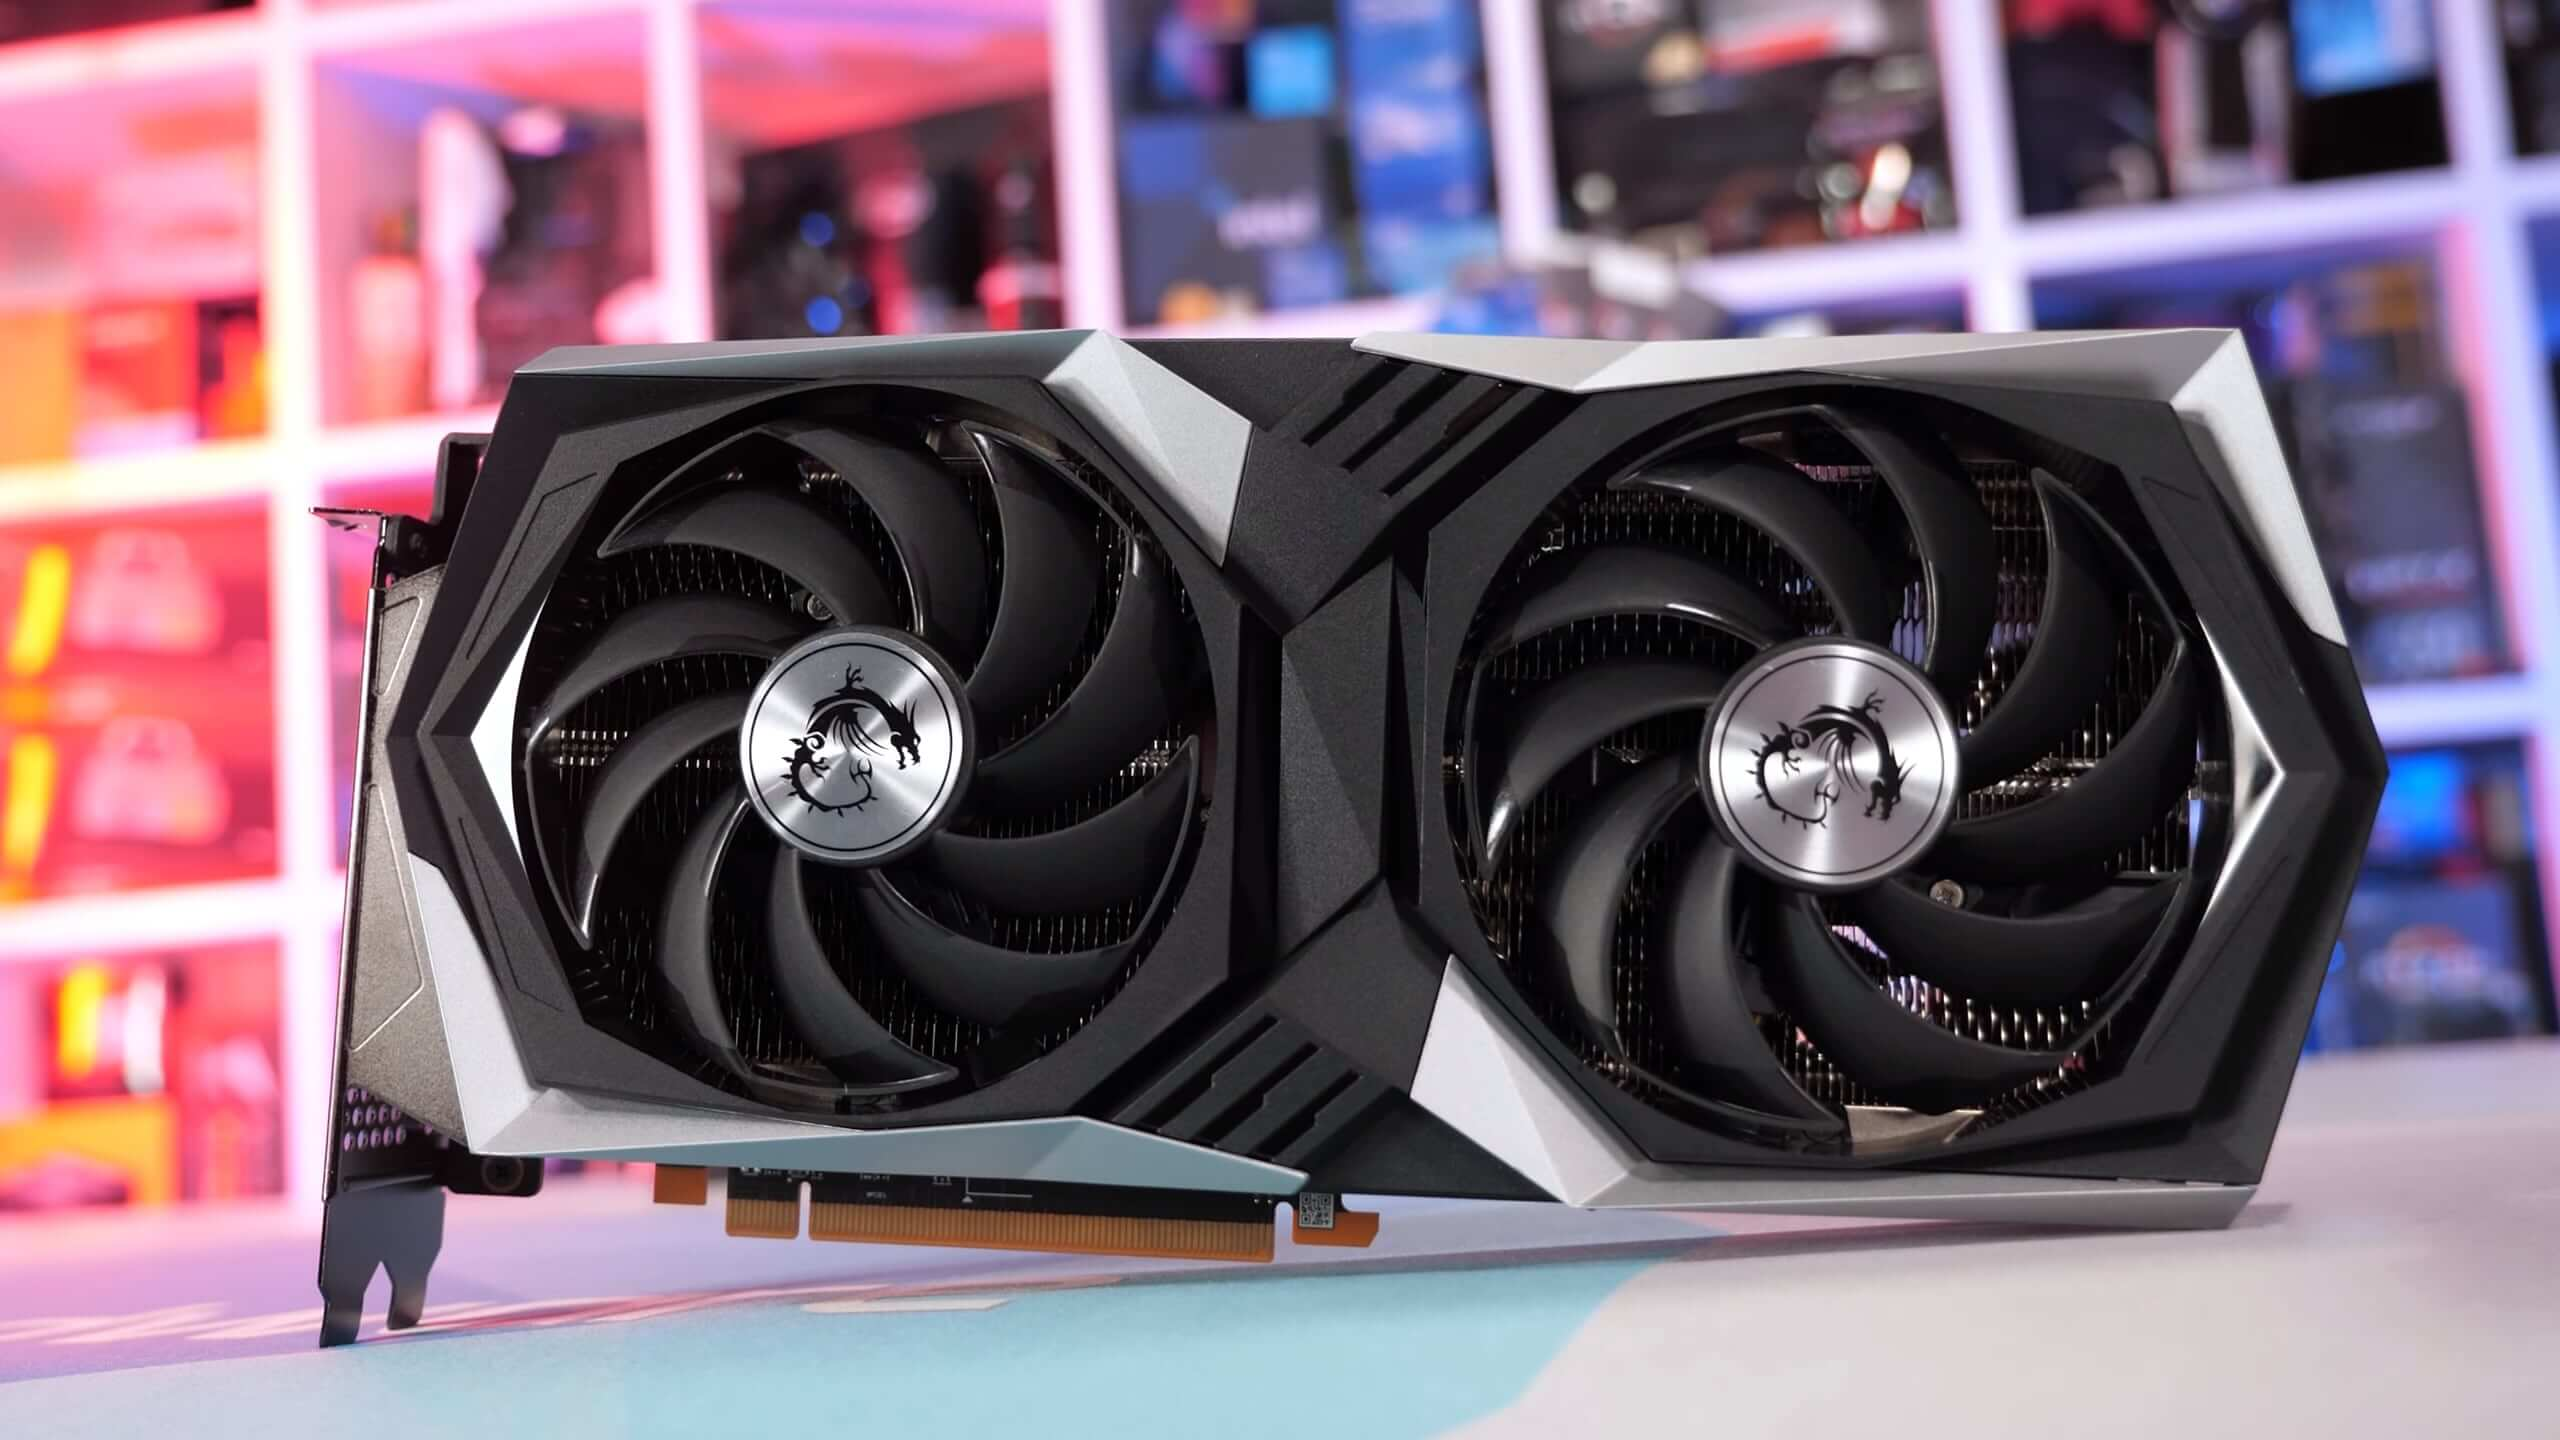 A pricing and availability update on the Radeon RX 6600 XT and how the GPU market is shaping up